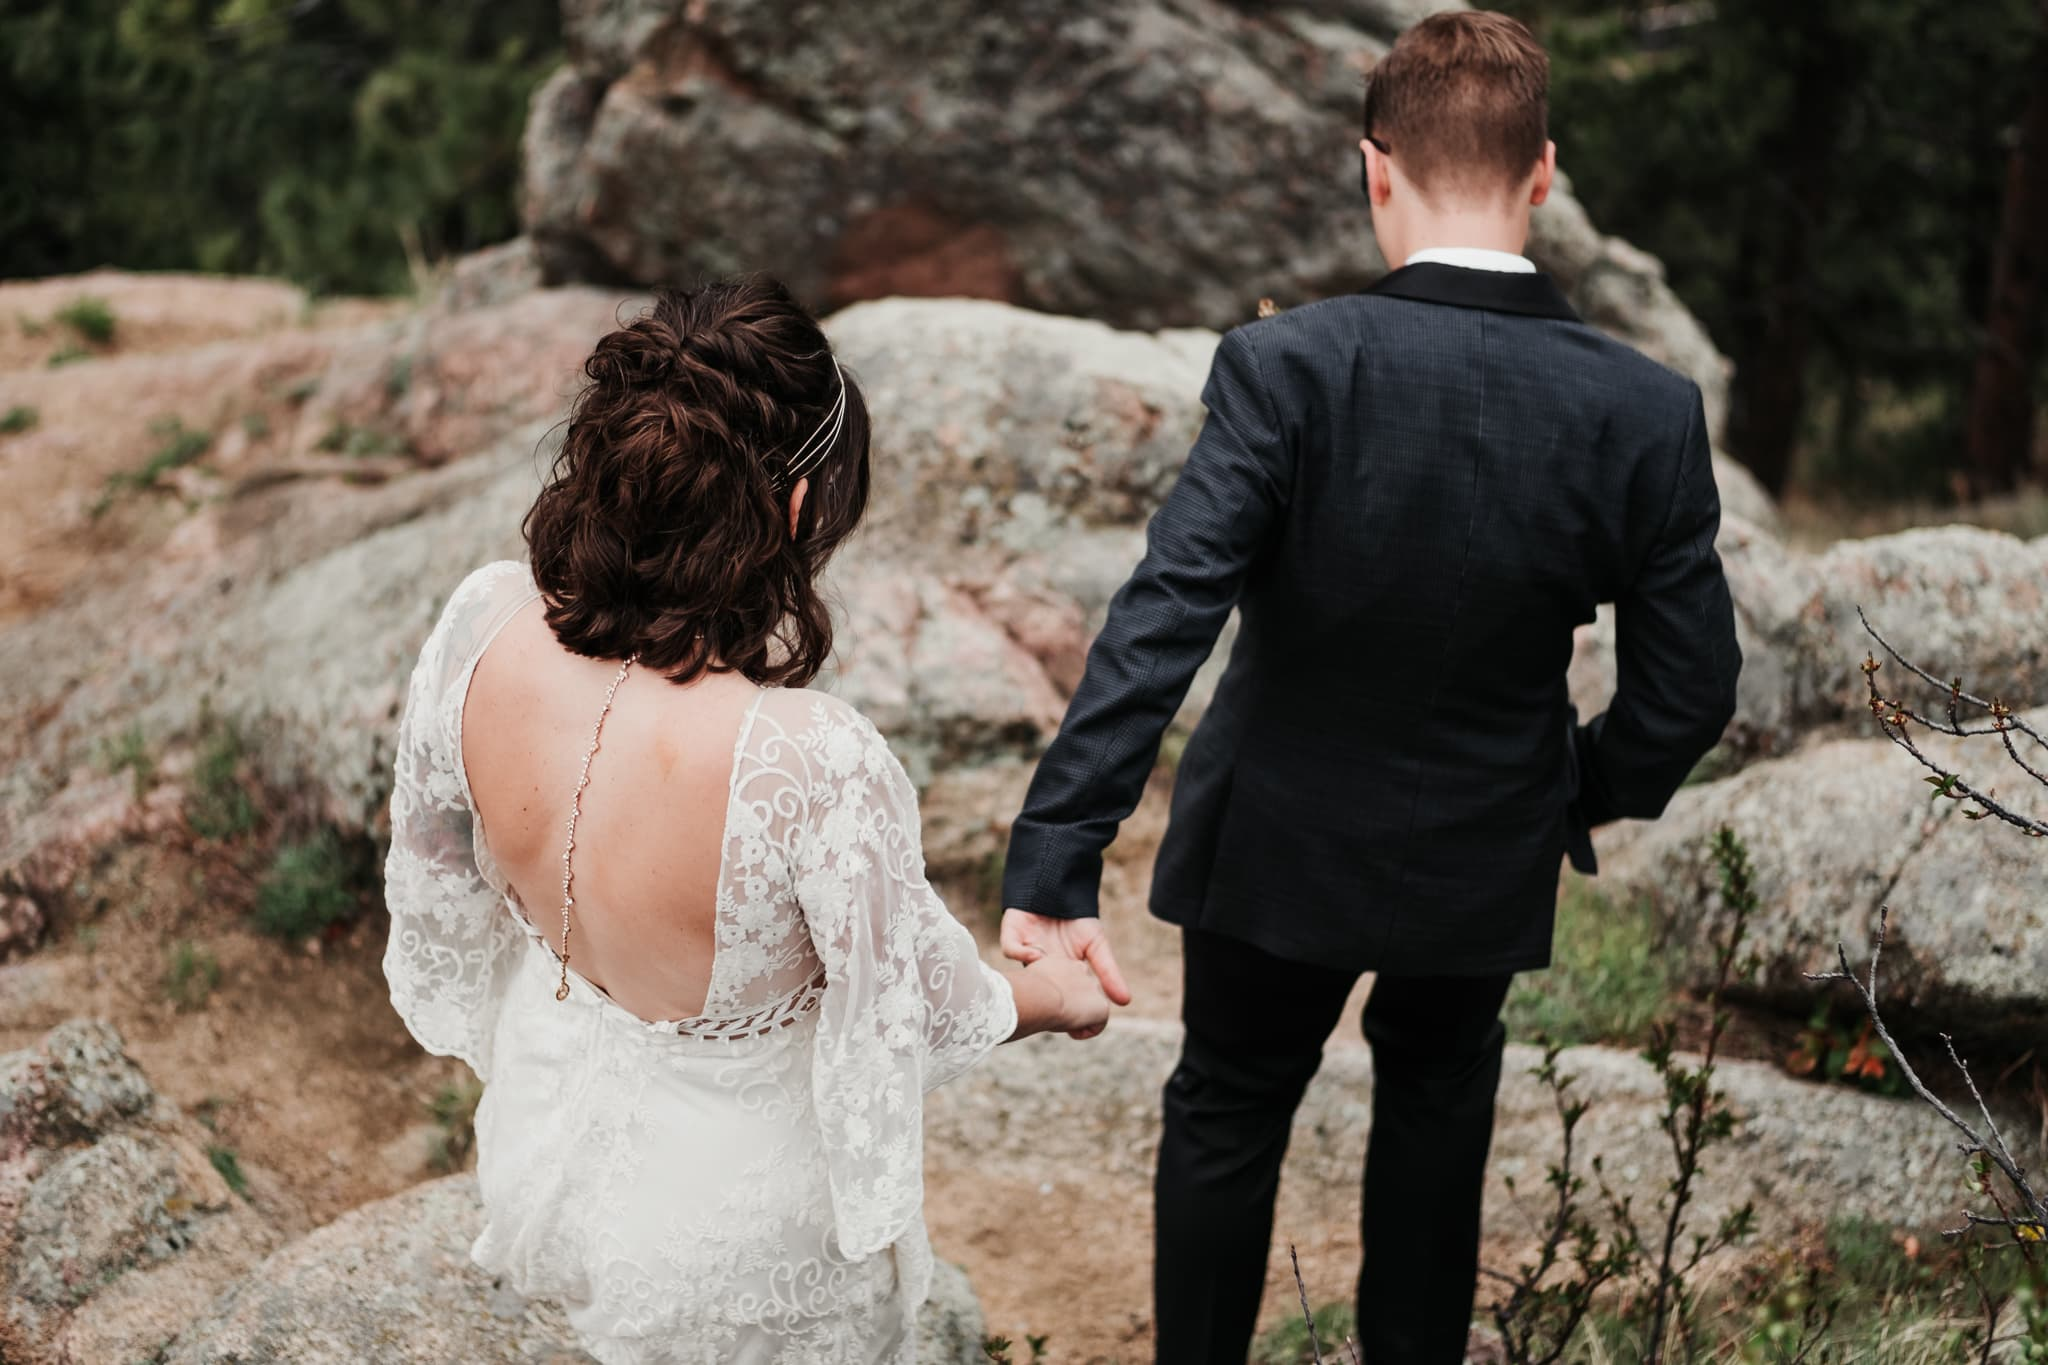 Hiking elopement photography, bride and groom hiking a mountain, Colorado wedding photographer